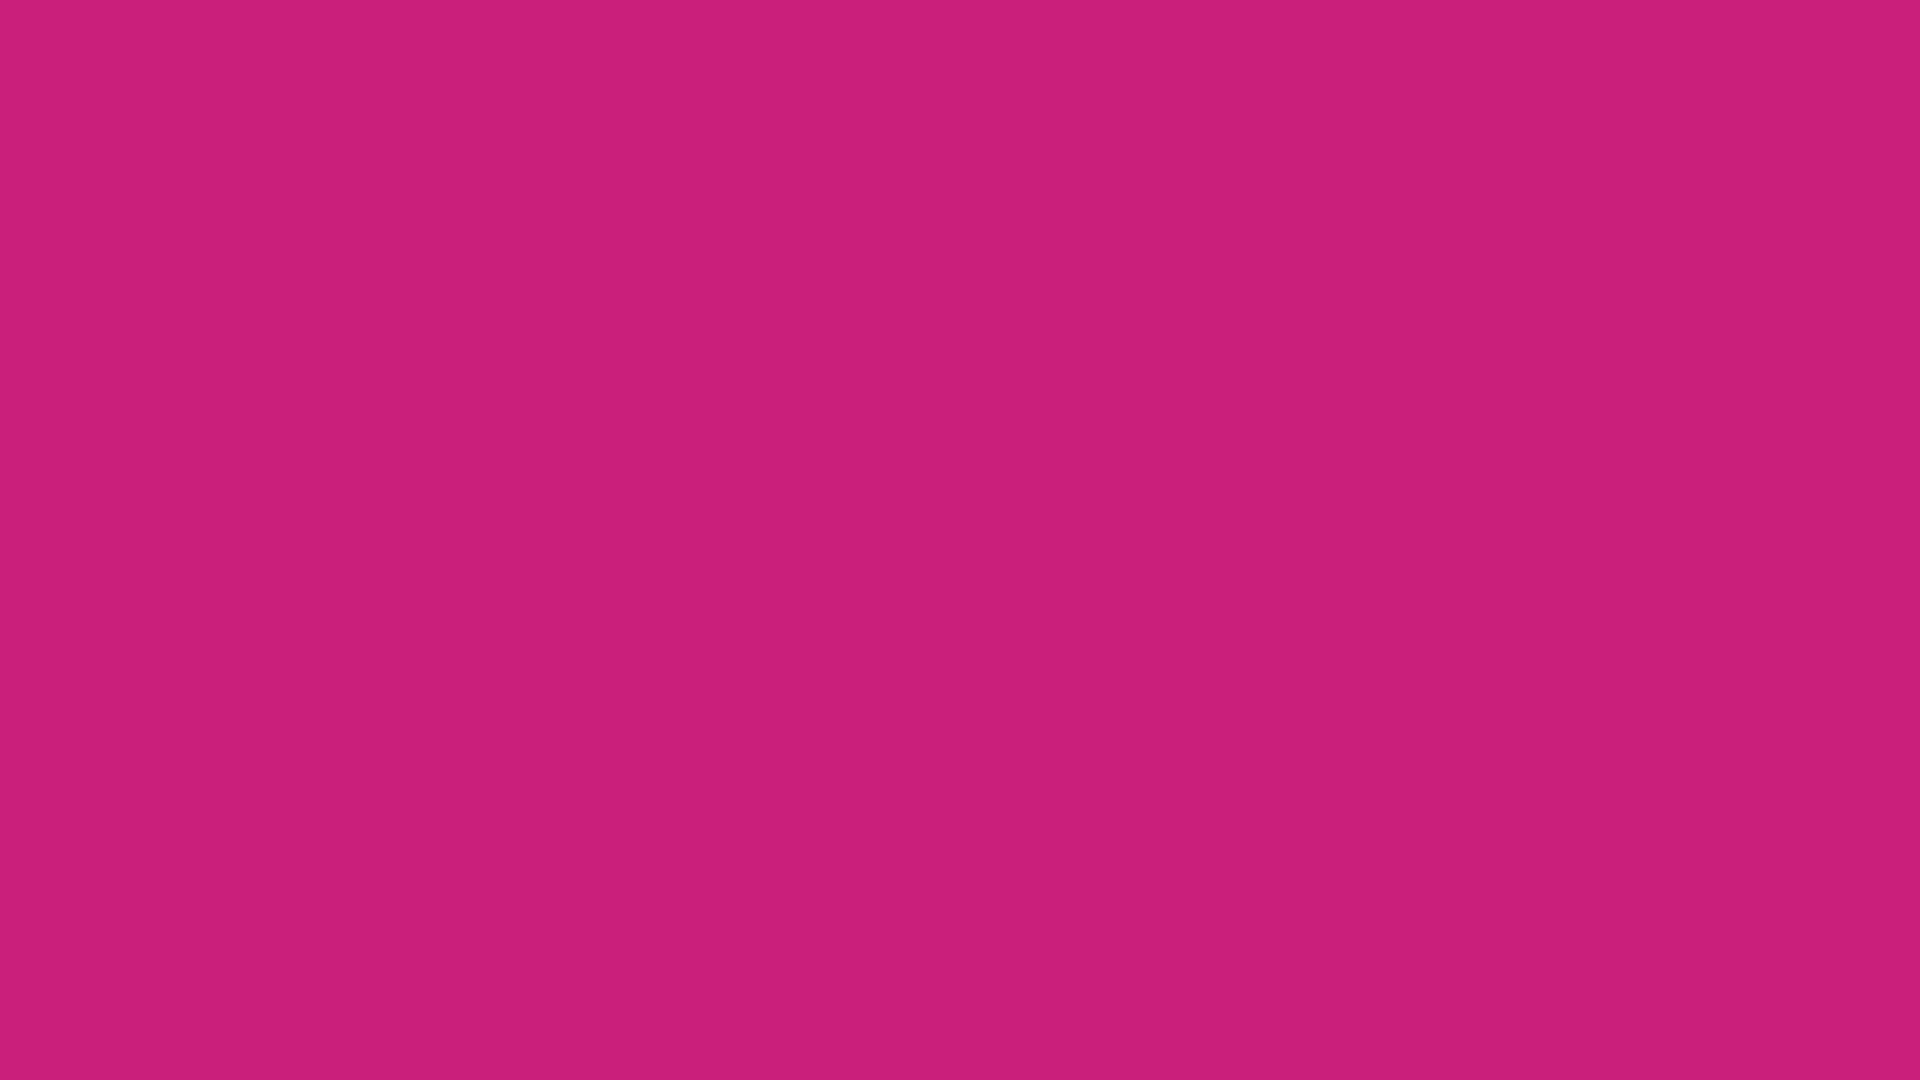 1920x1080 Magenta Dye Solid Color Background